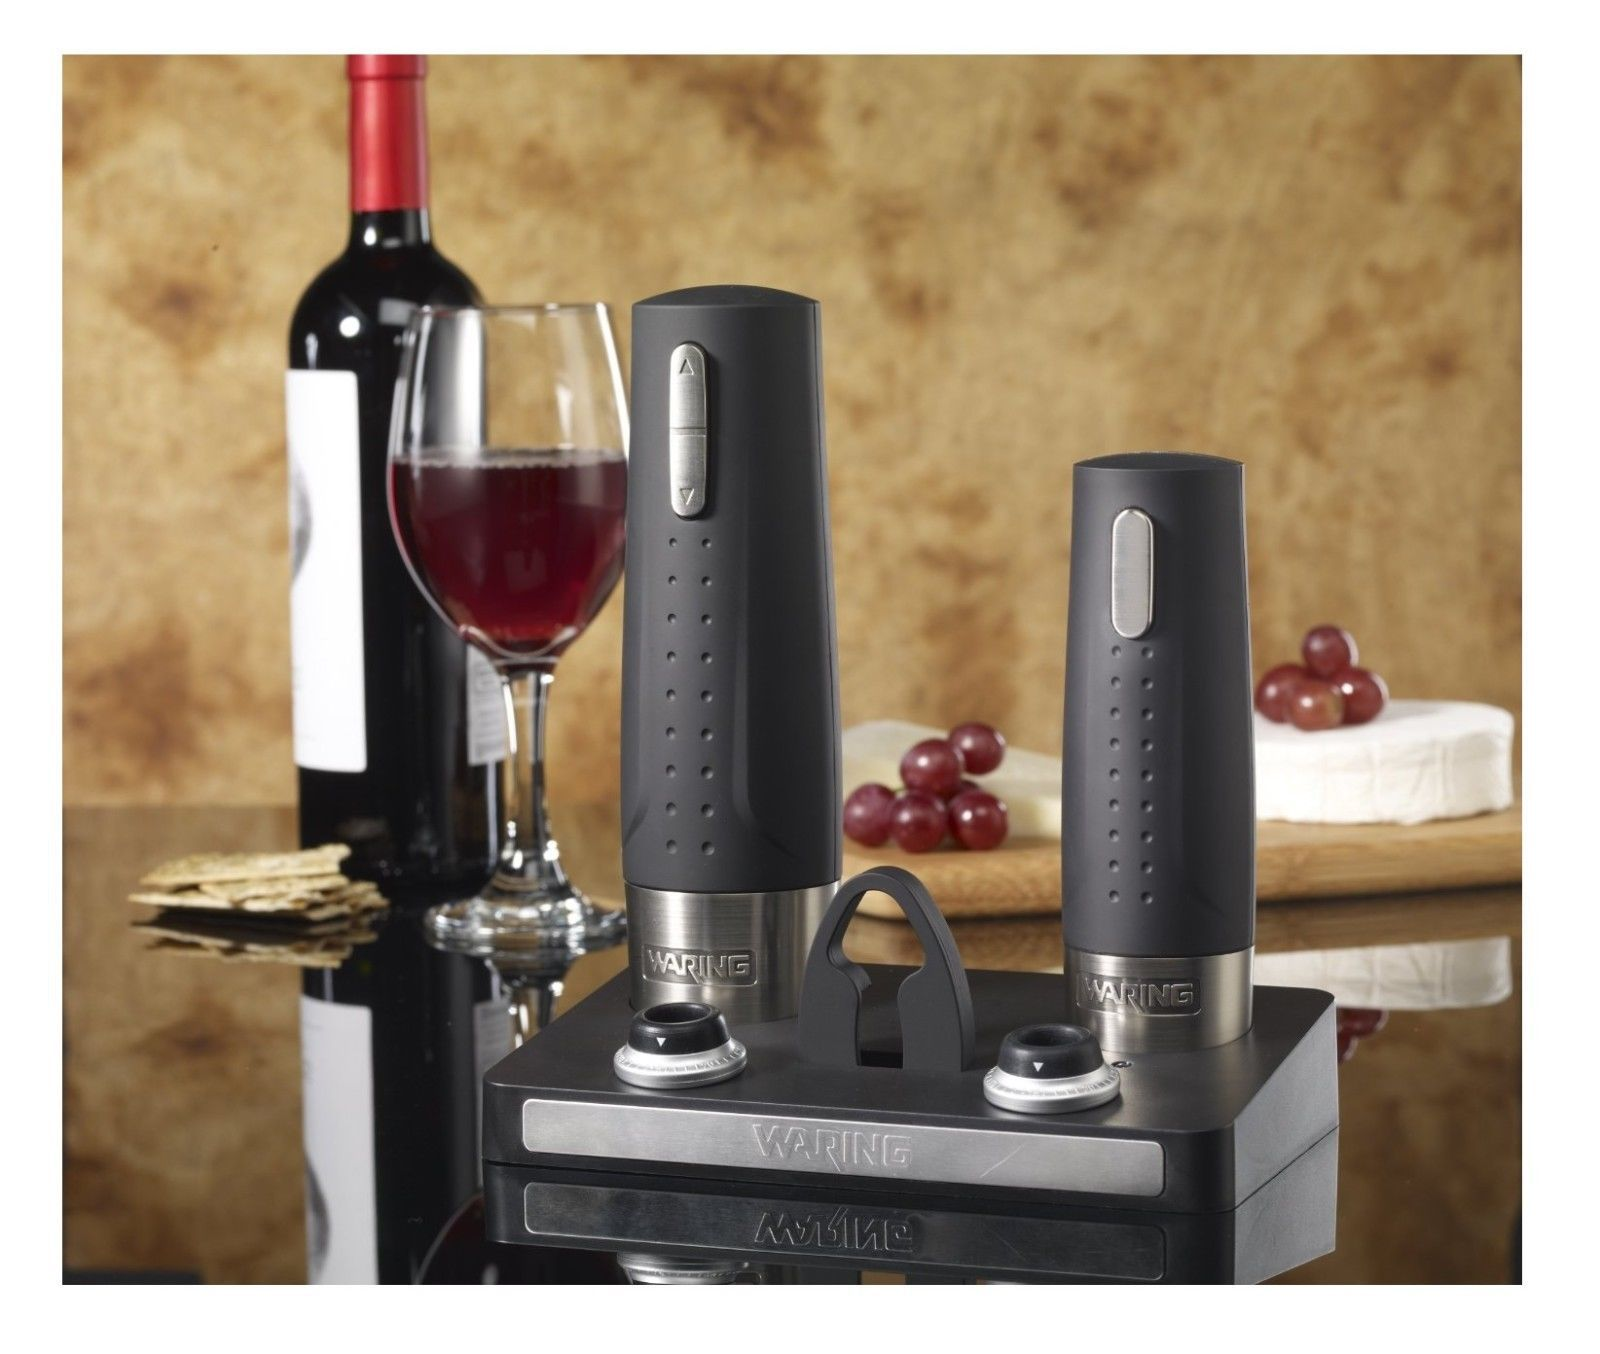 Pro wine bottle opener bar home kitchen tools charge base for How to preserve wine after opening